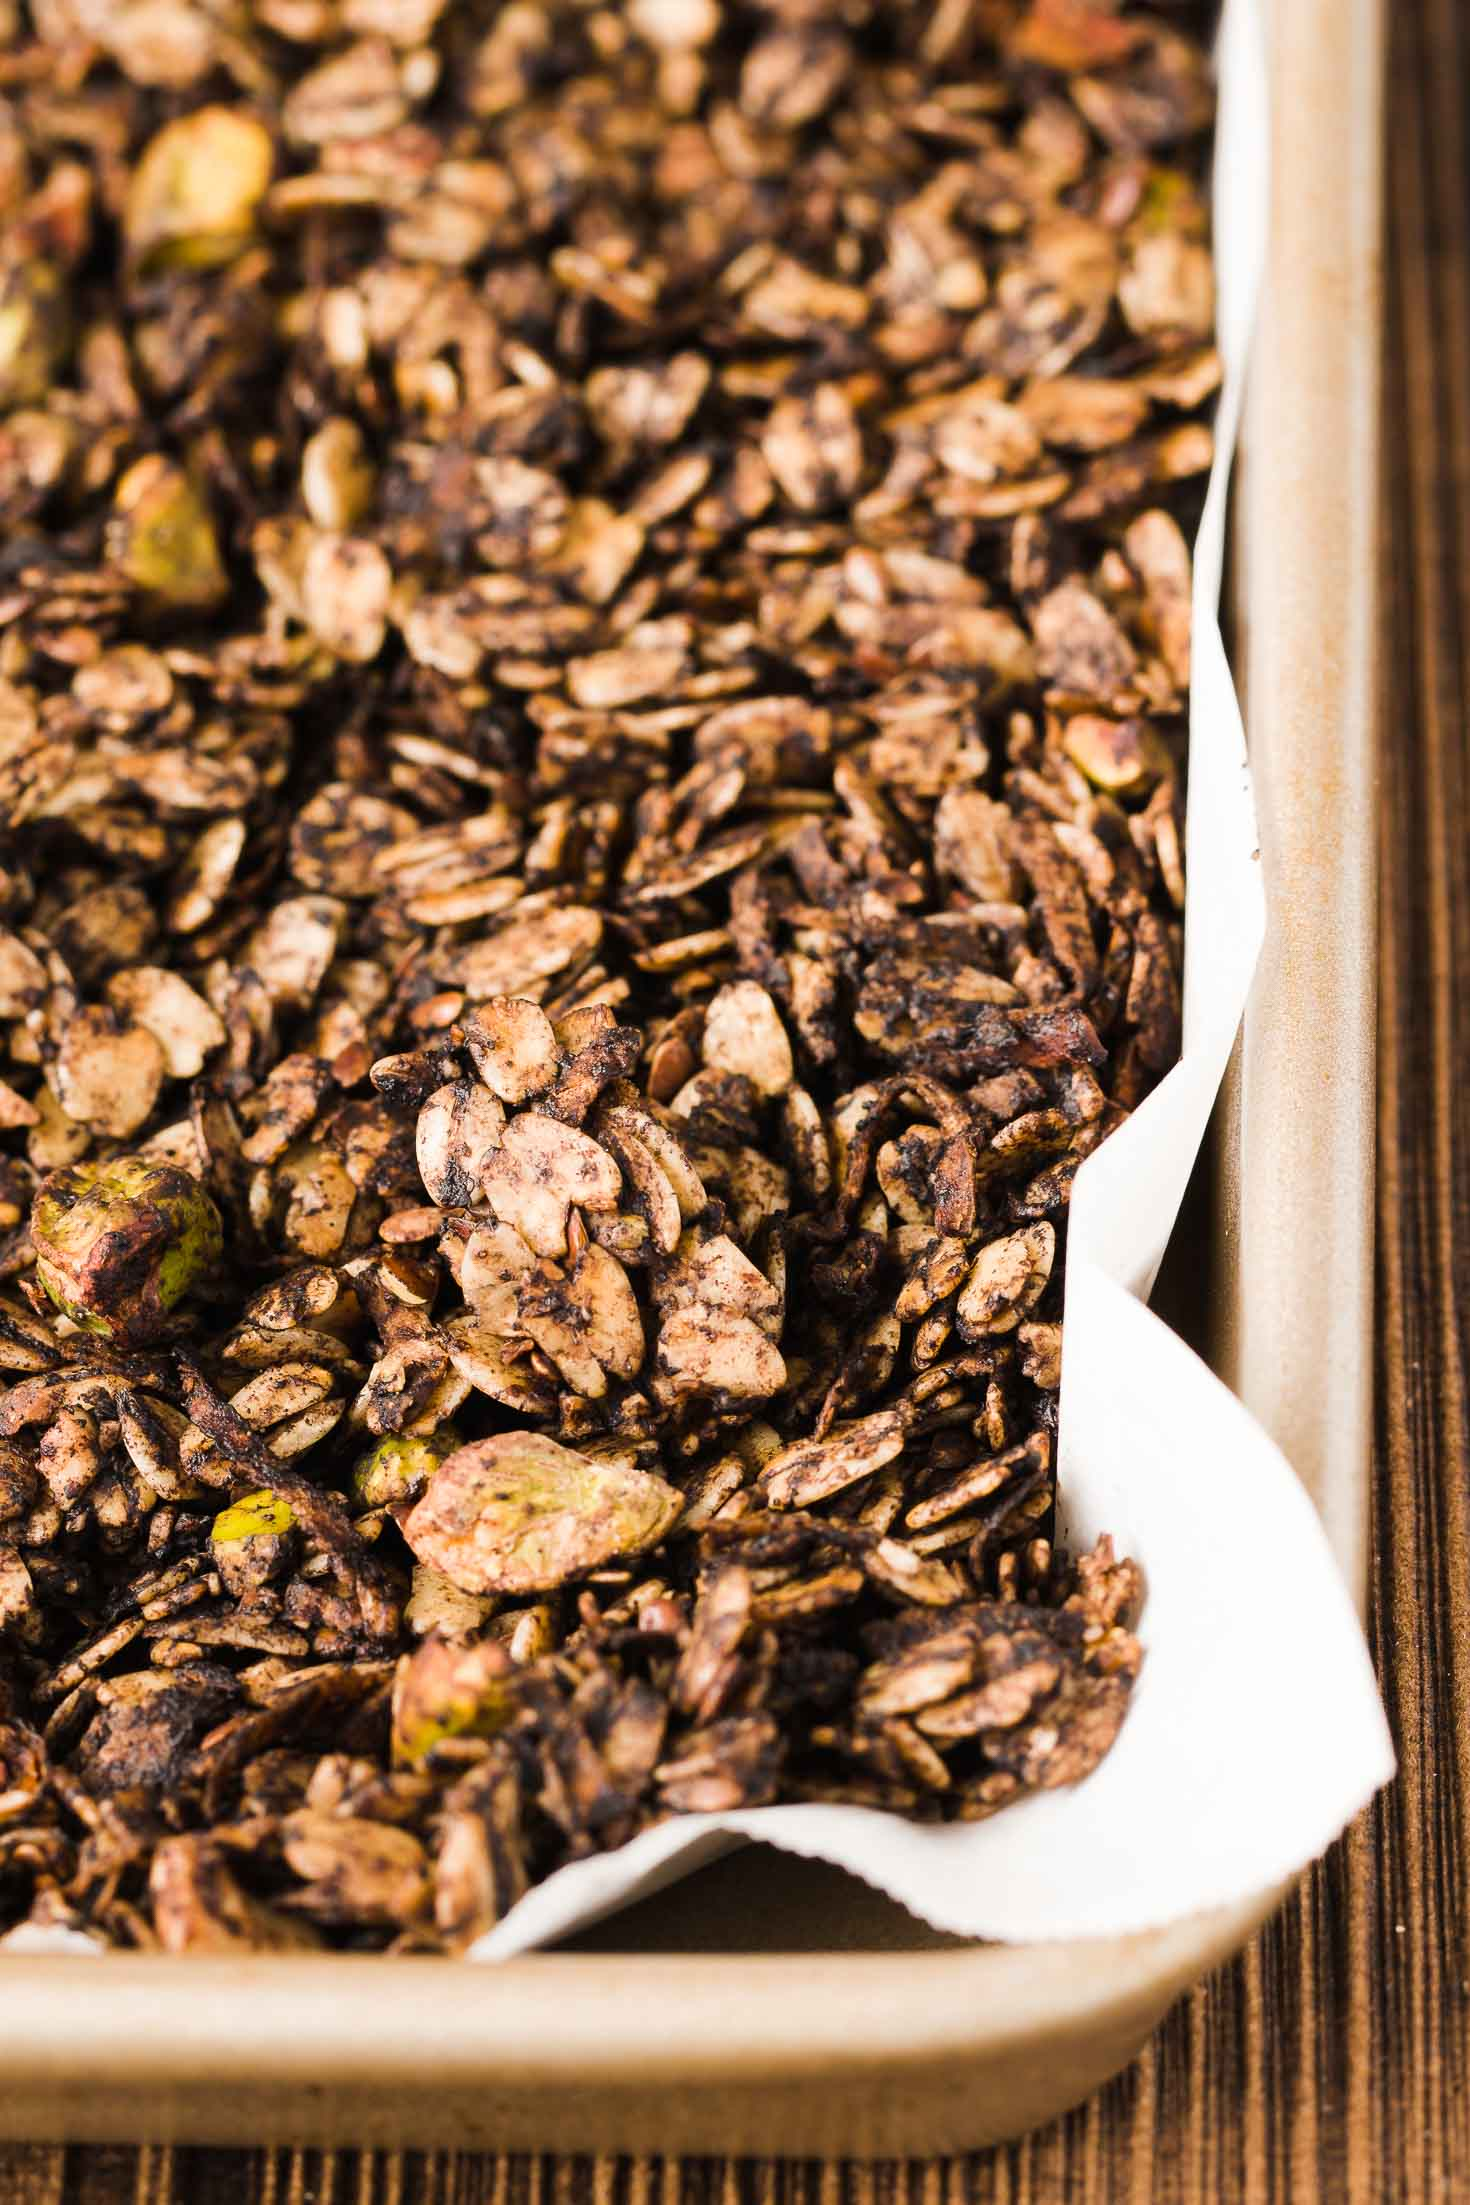 Pistachio Chocolate Granola-front view-granola in a baking tray